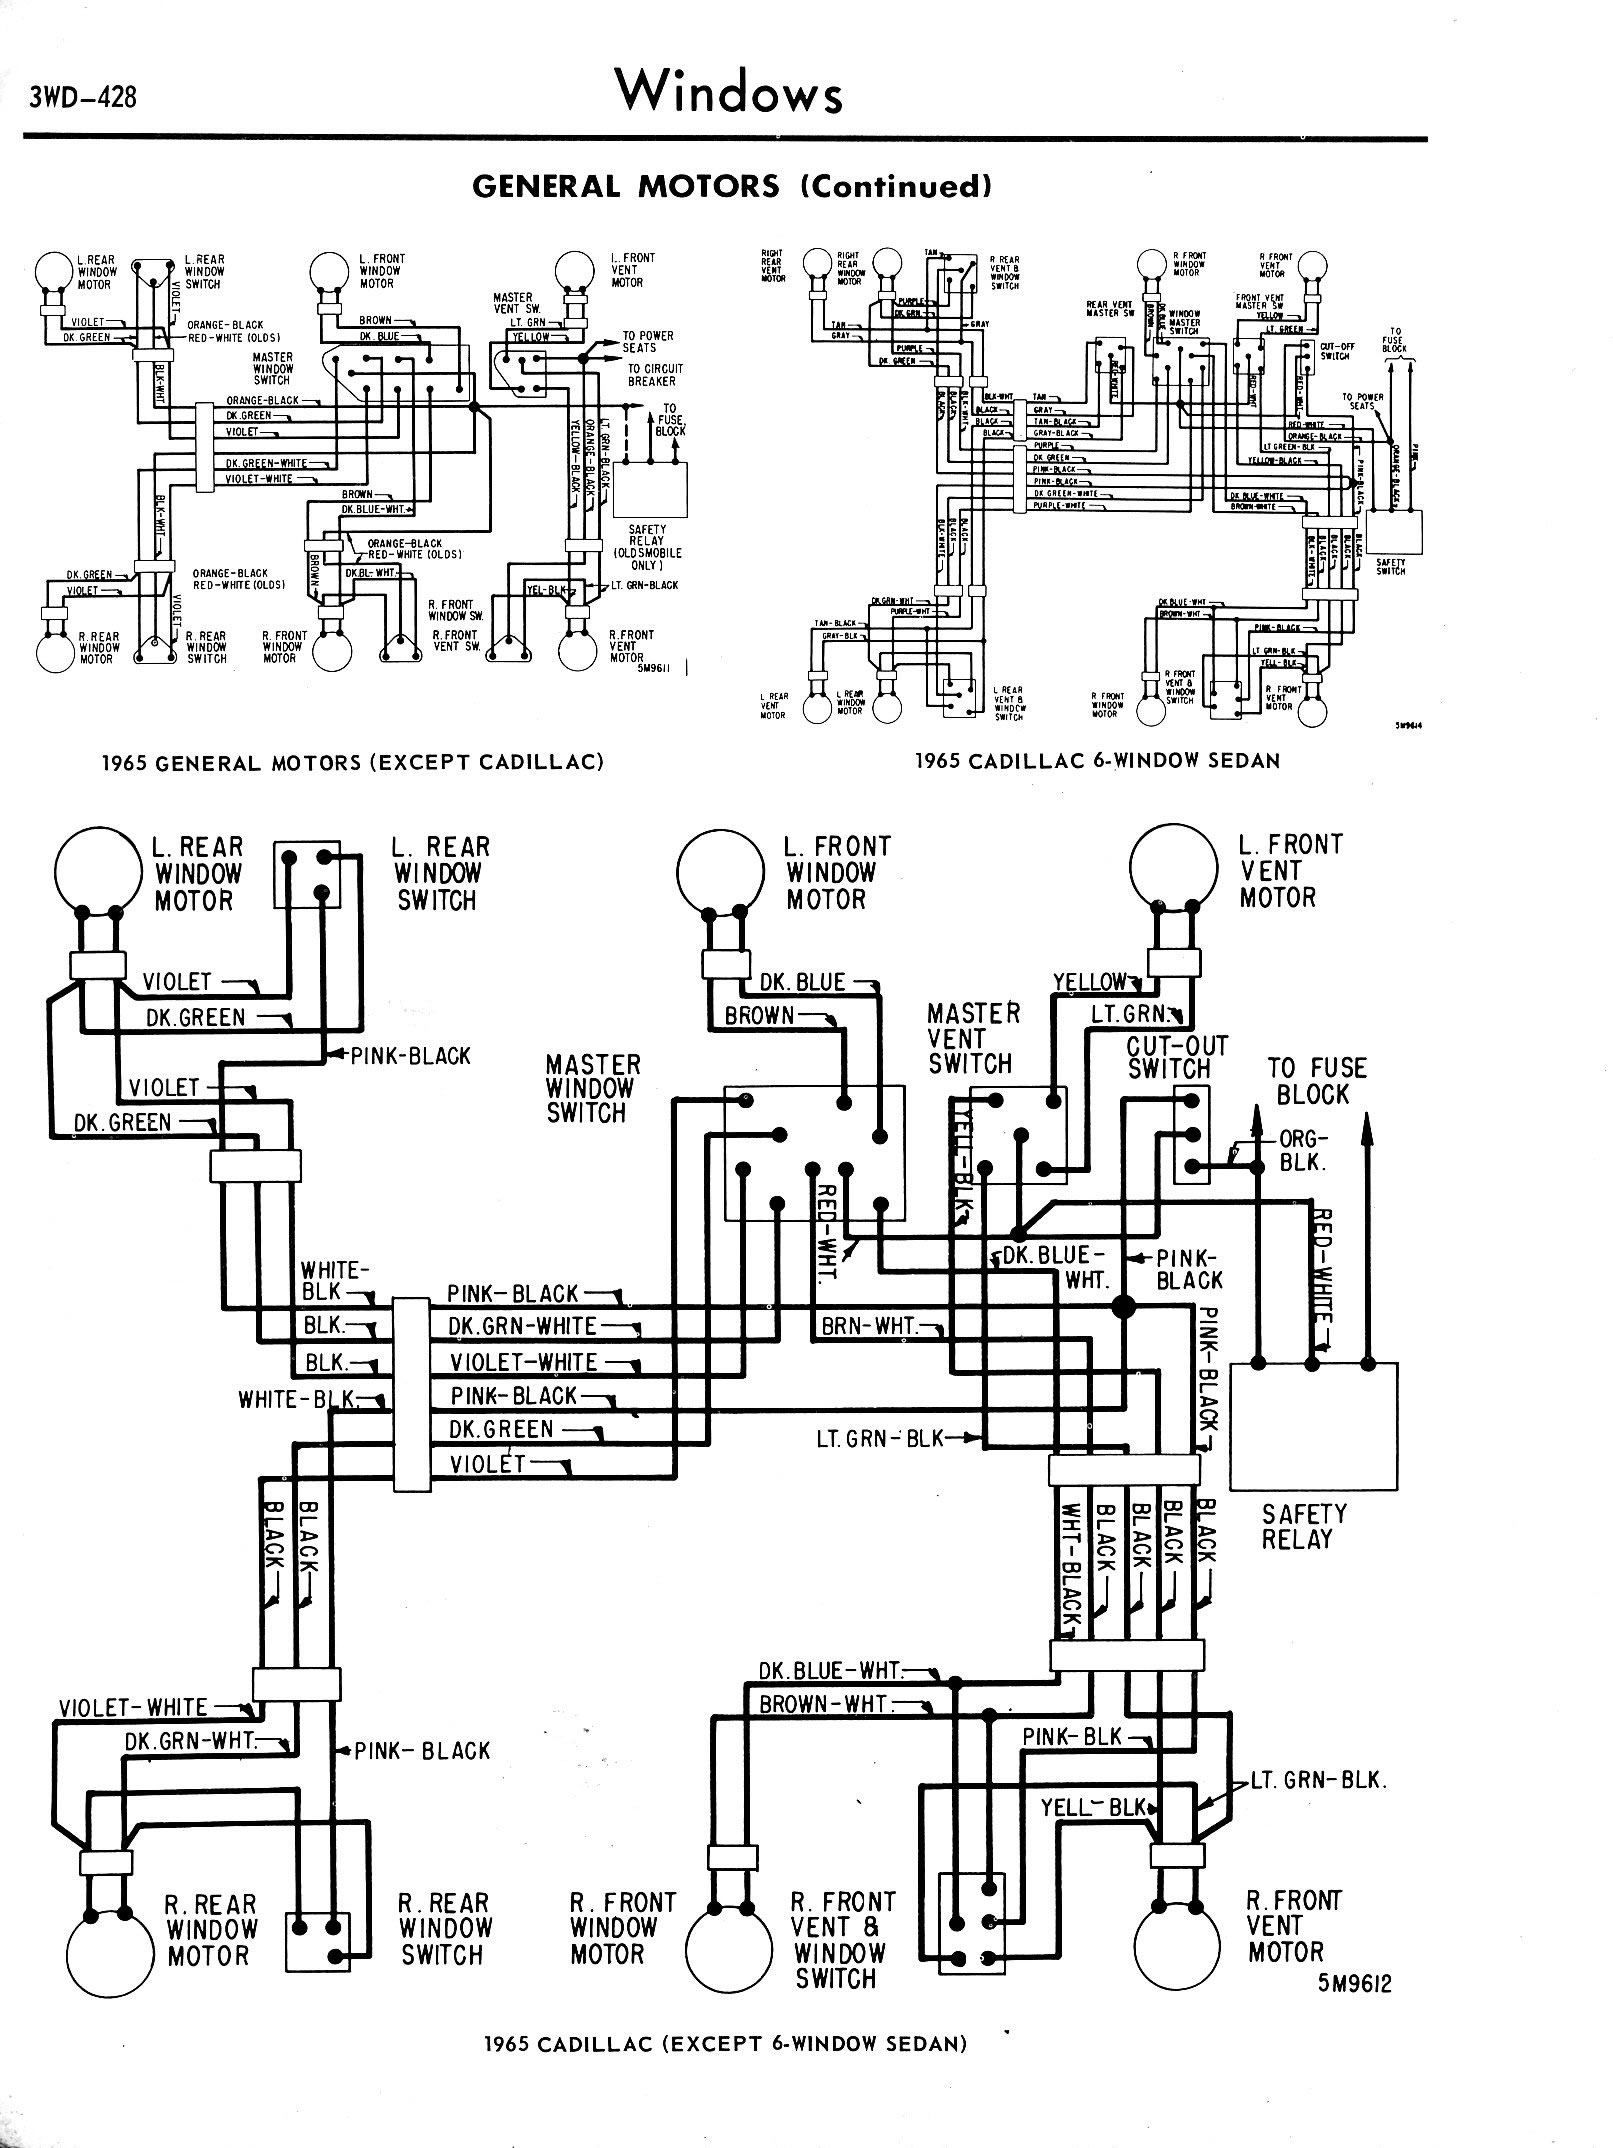 1970 Chevelle Power Window Wiring Diagram 71 Library 65 Fuse Box Windows Gm Including The 6 Cadillac Figure A